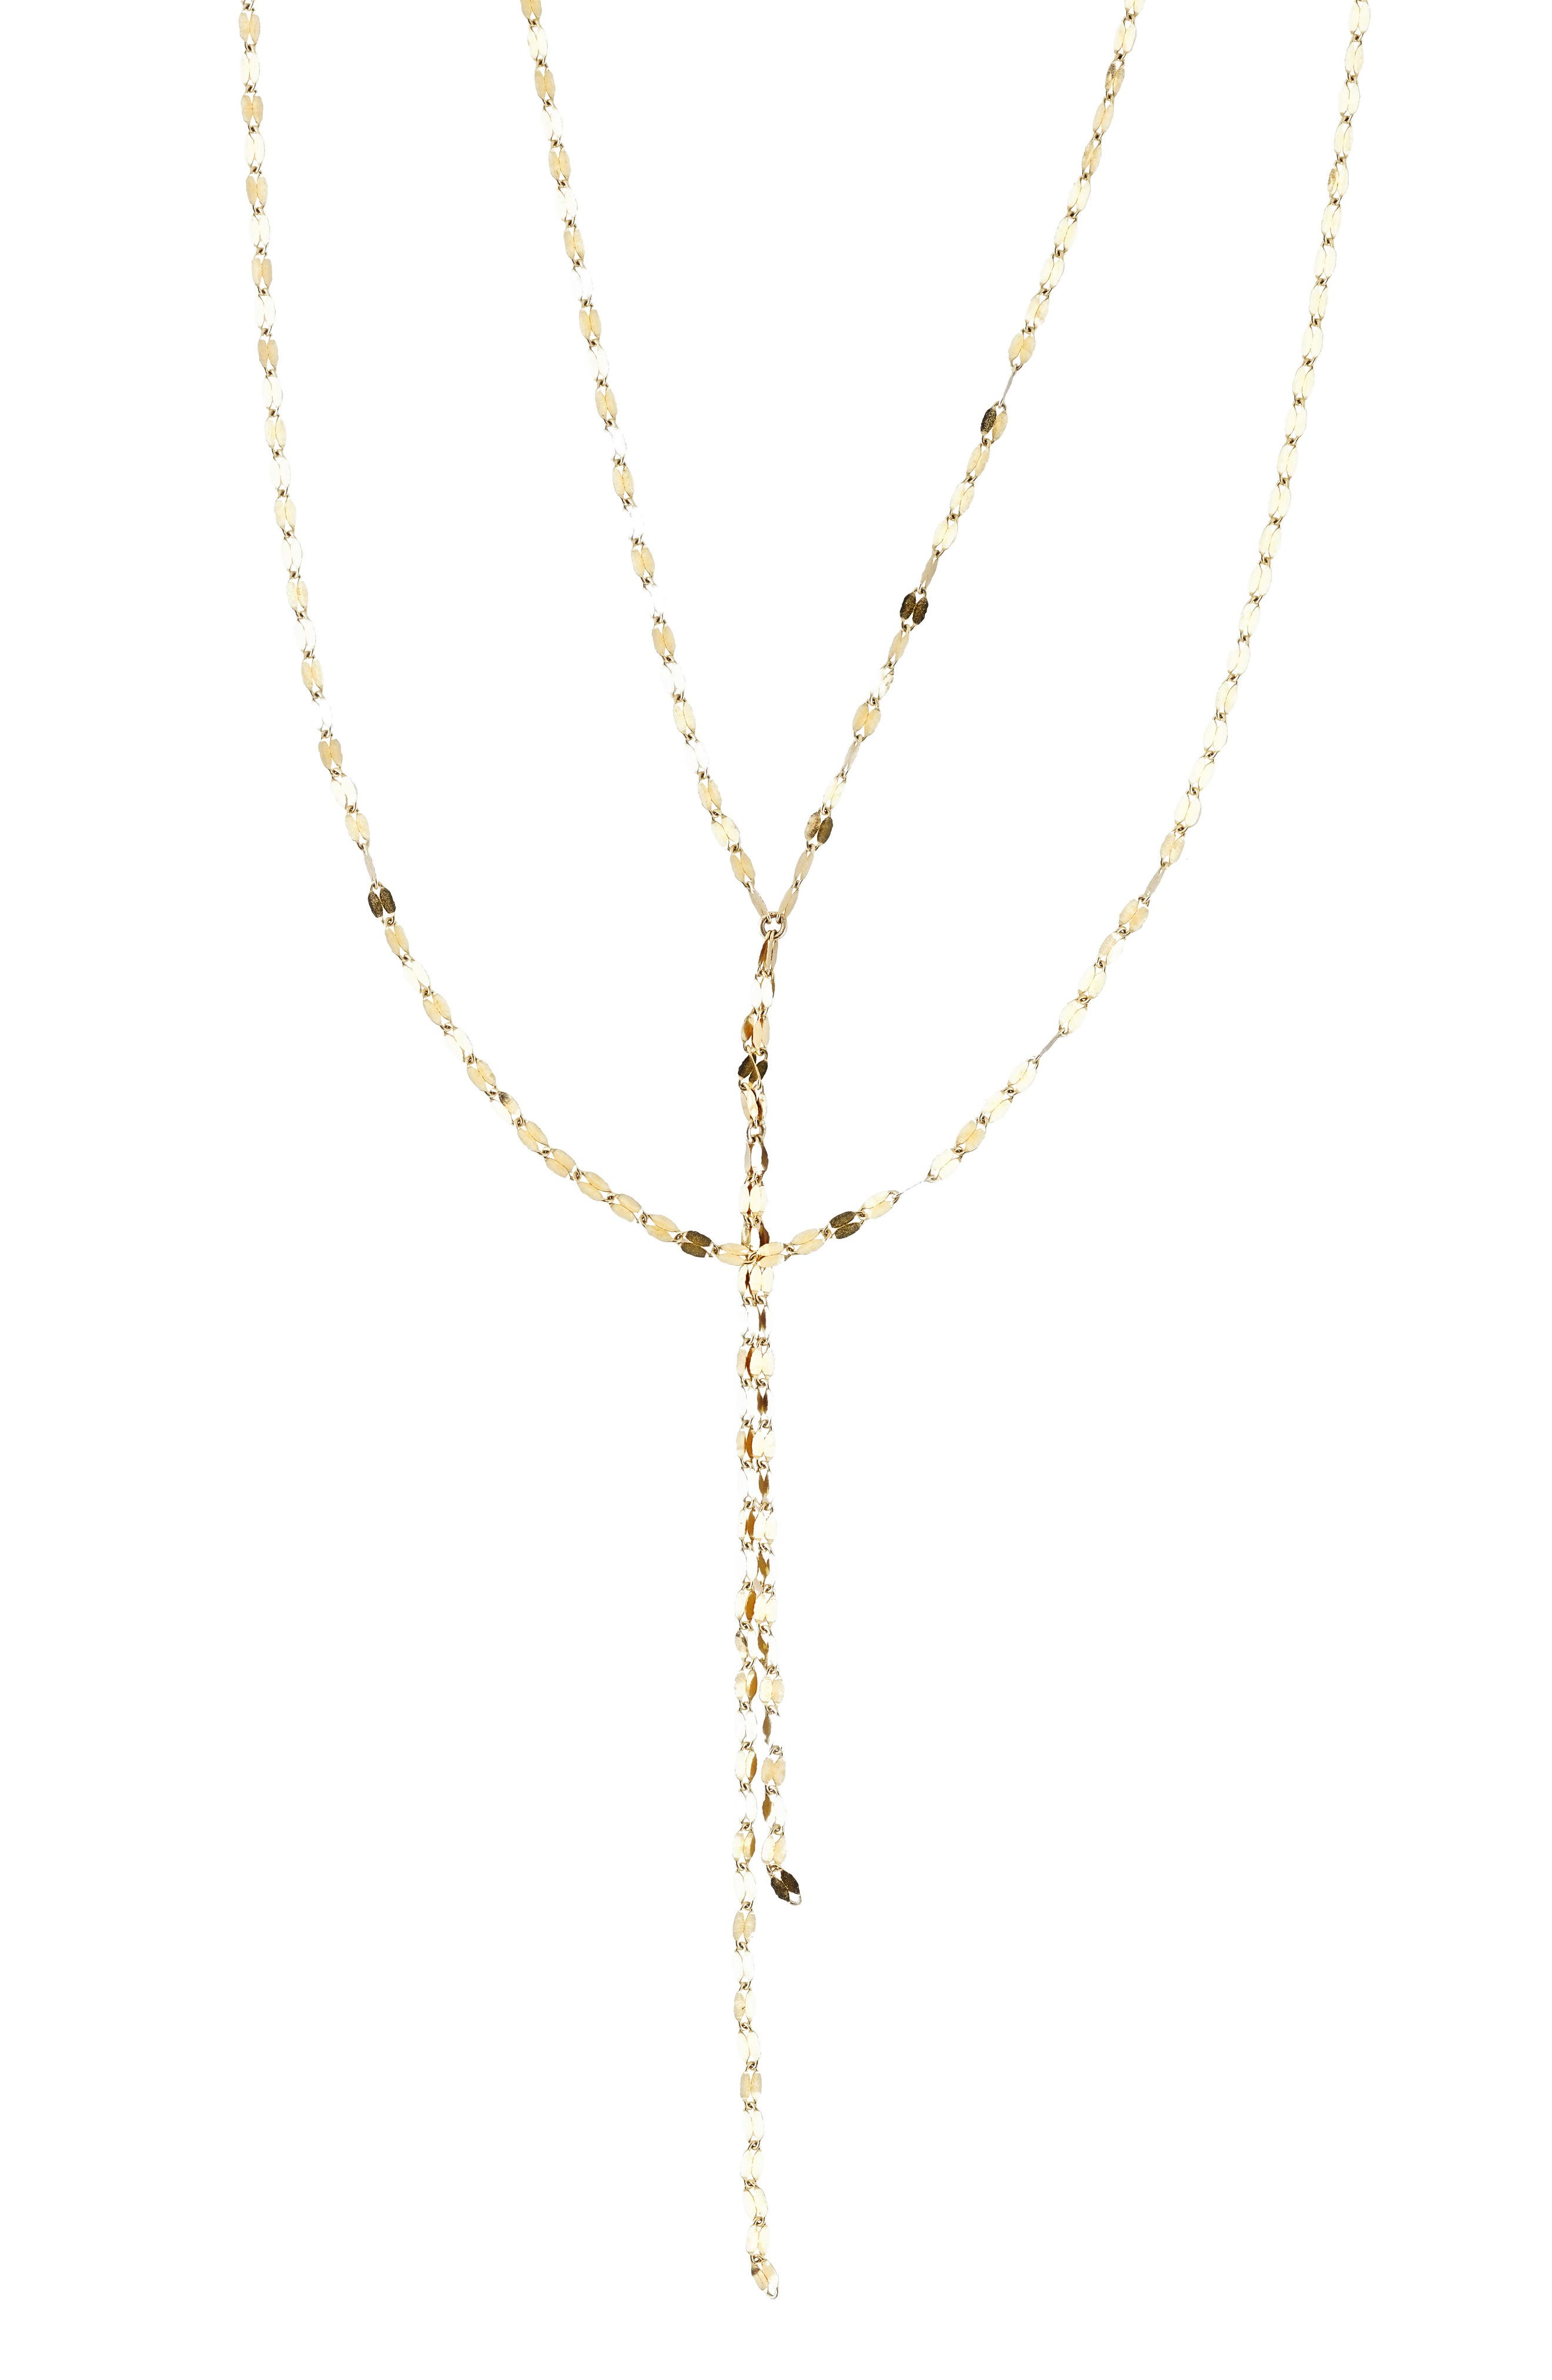 Multistrand Necklace,                             Main thumbnail 1, color,                             Yellow Gold